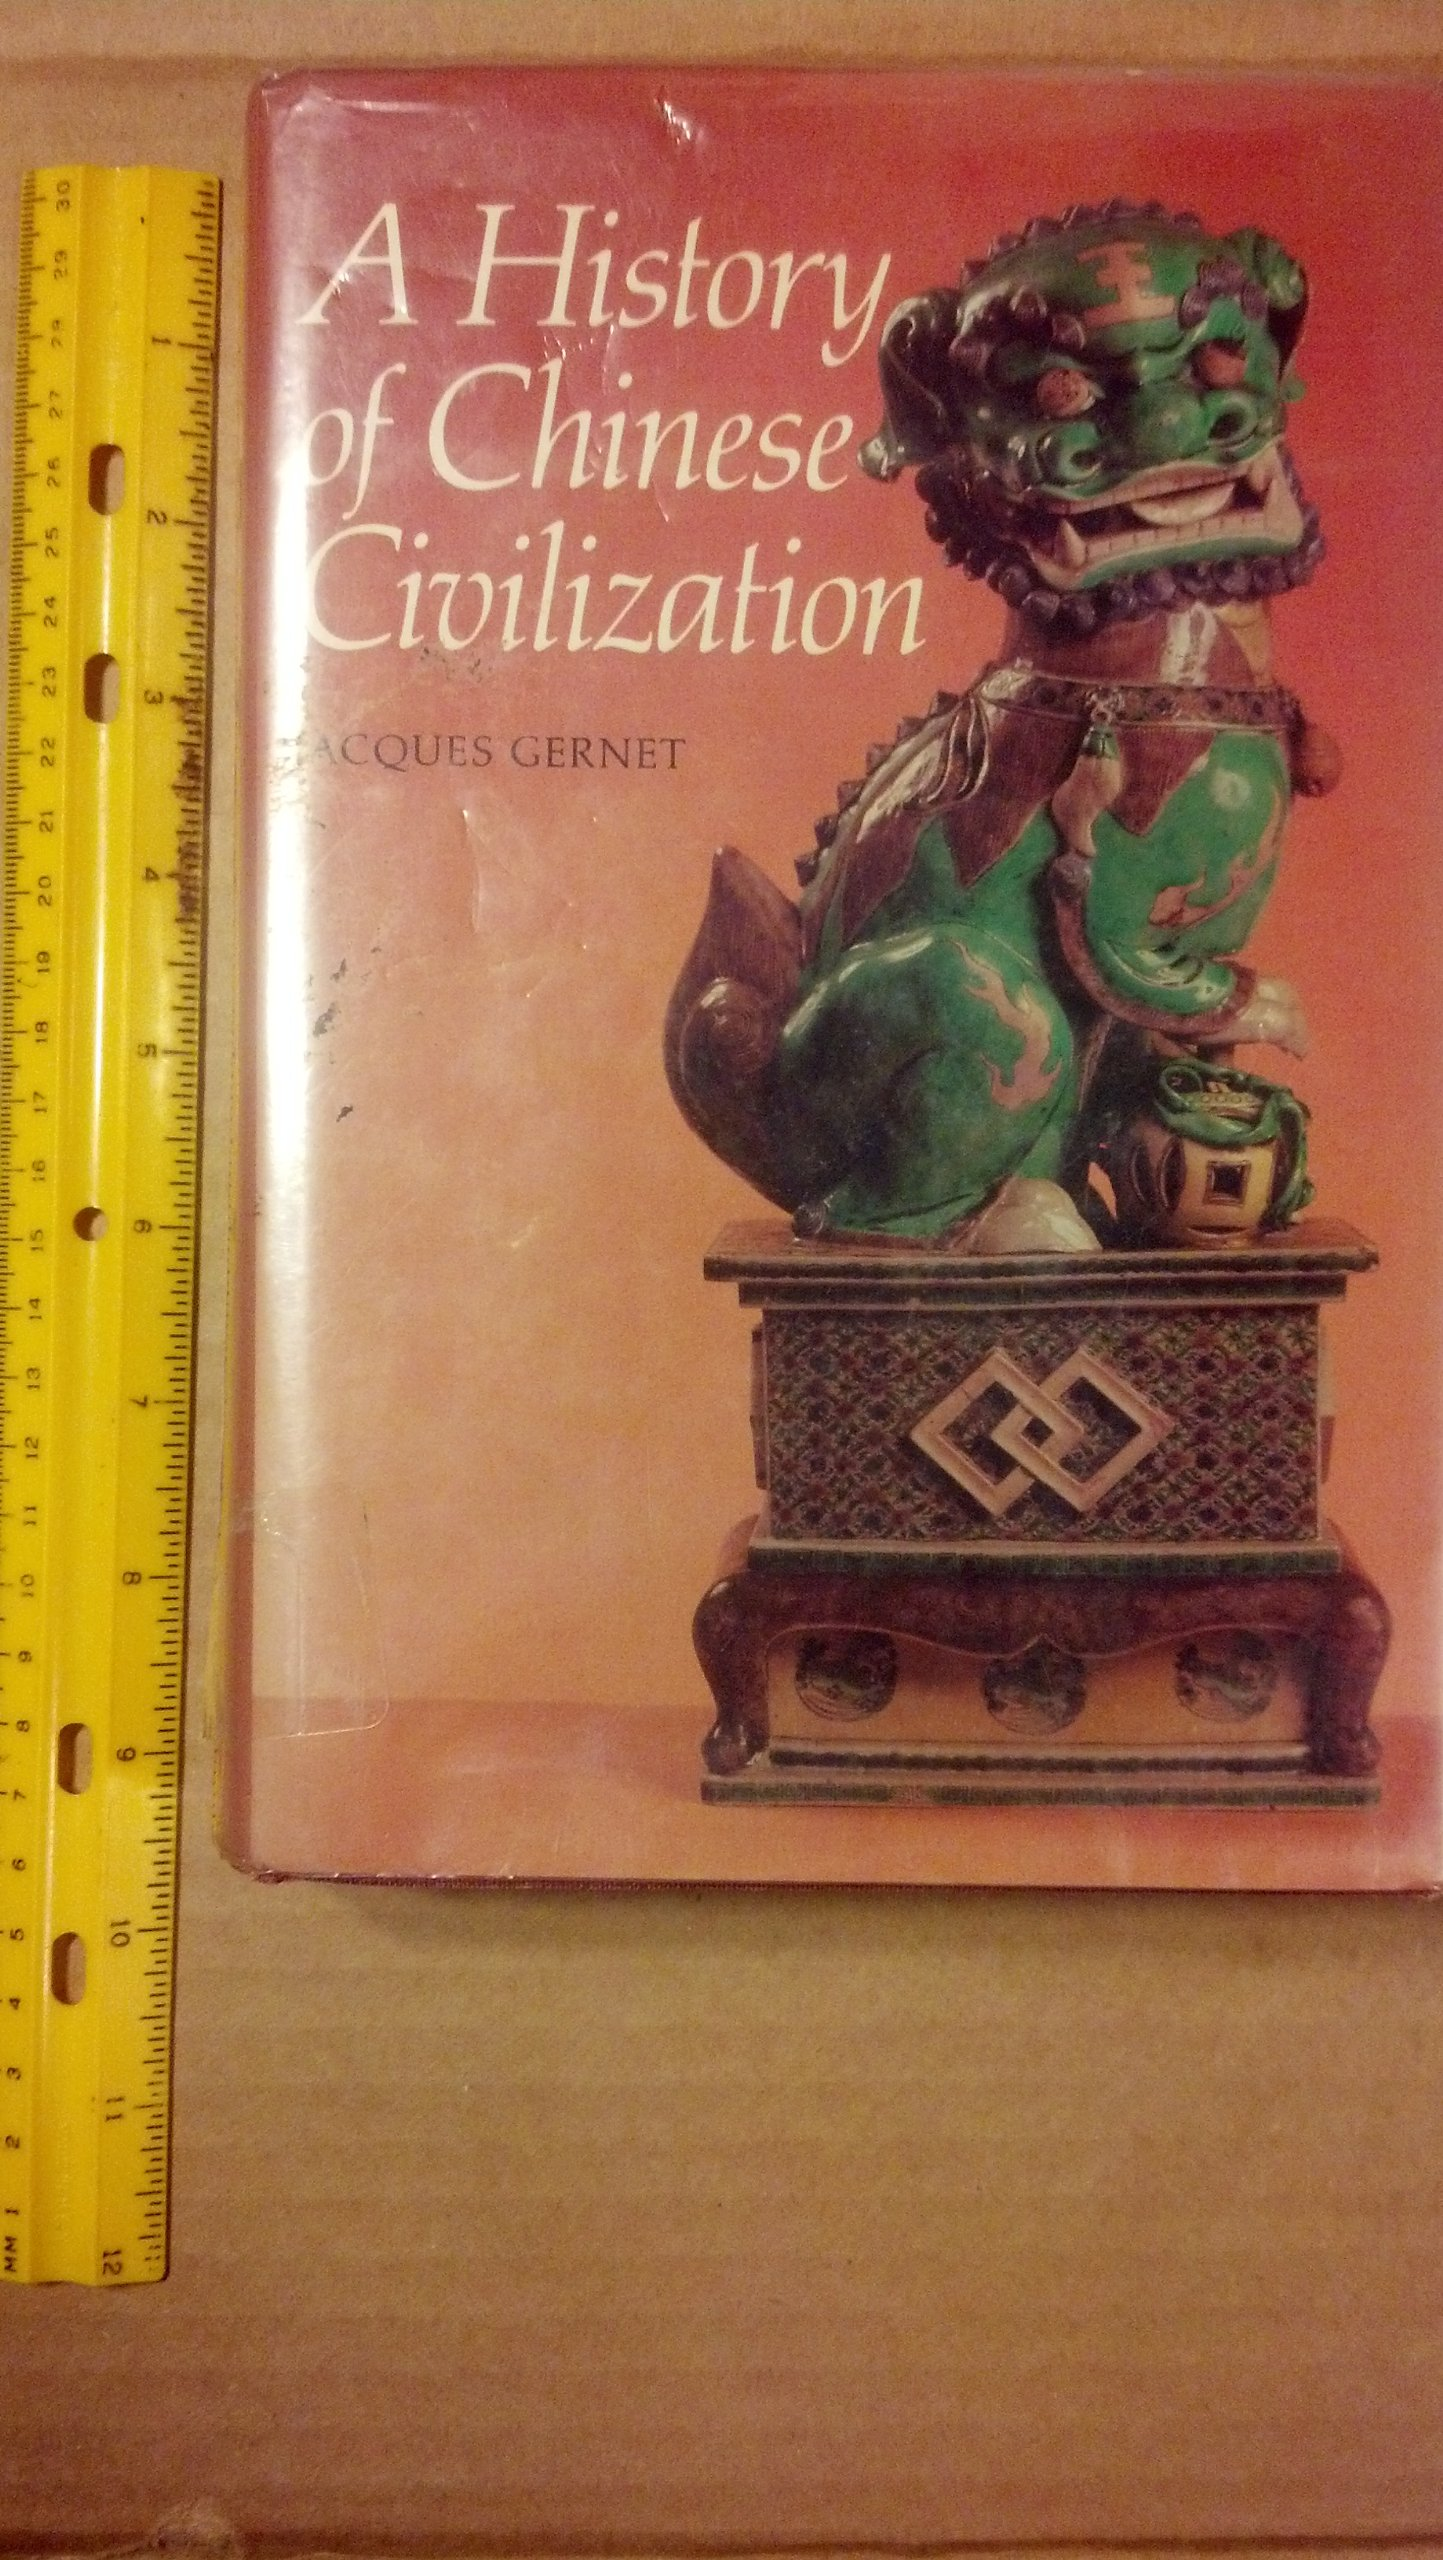 Buy A History of Chinese Civilization Book Online at Low Prices in India |  A History of Chinese Civilization Reviews & Ratings - Amazon.in